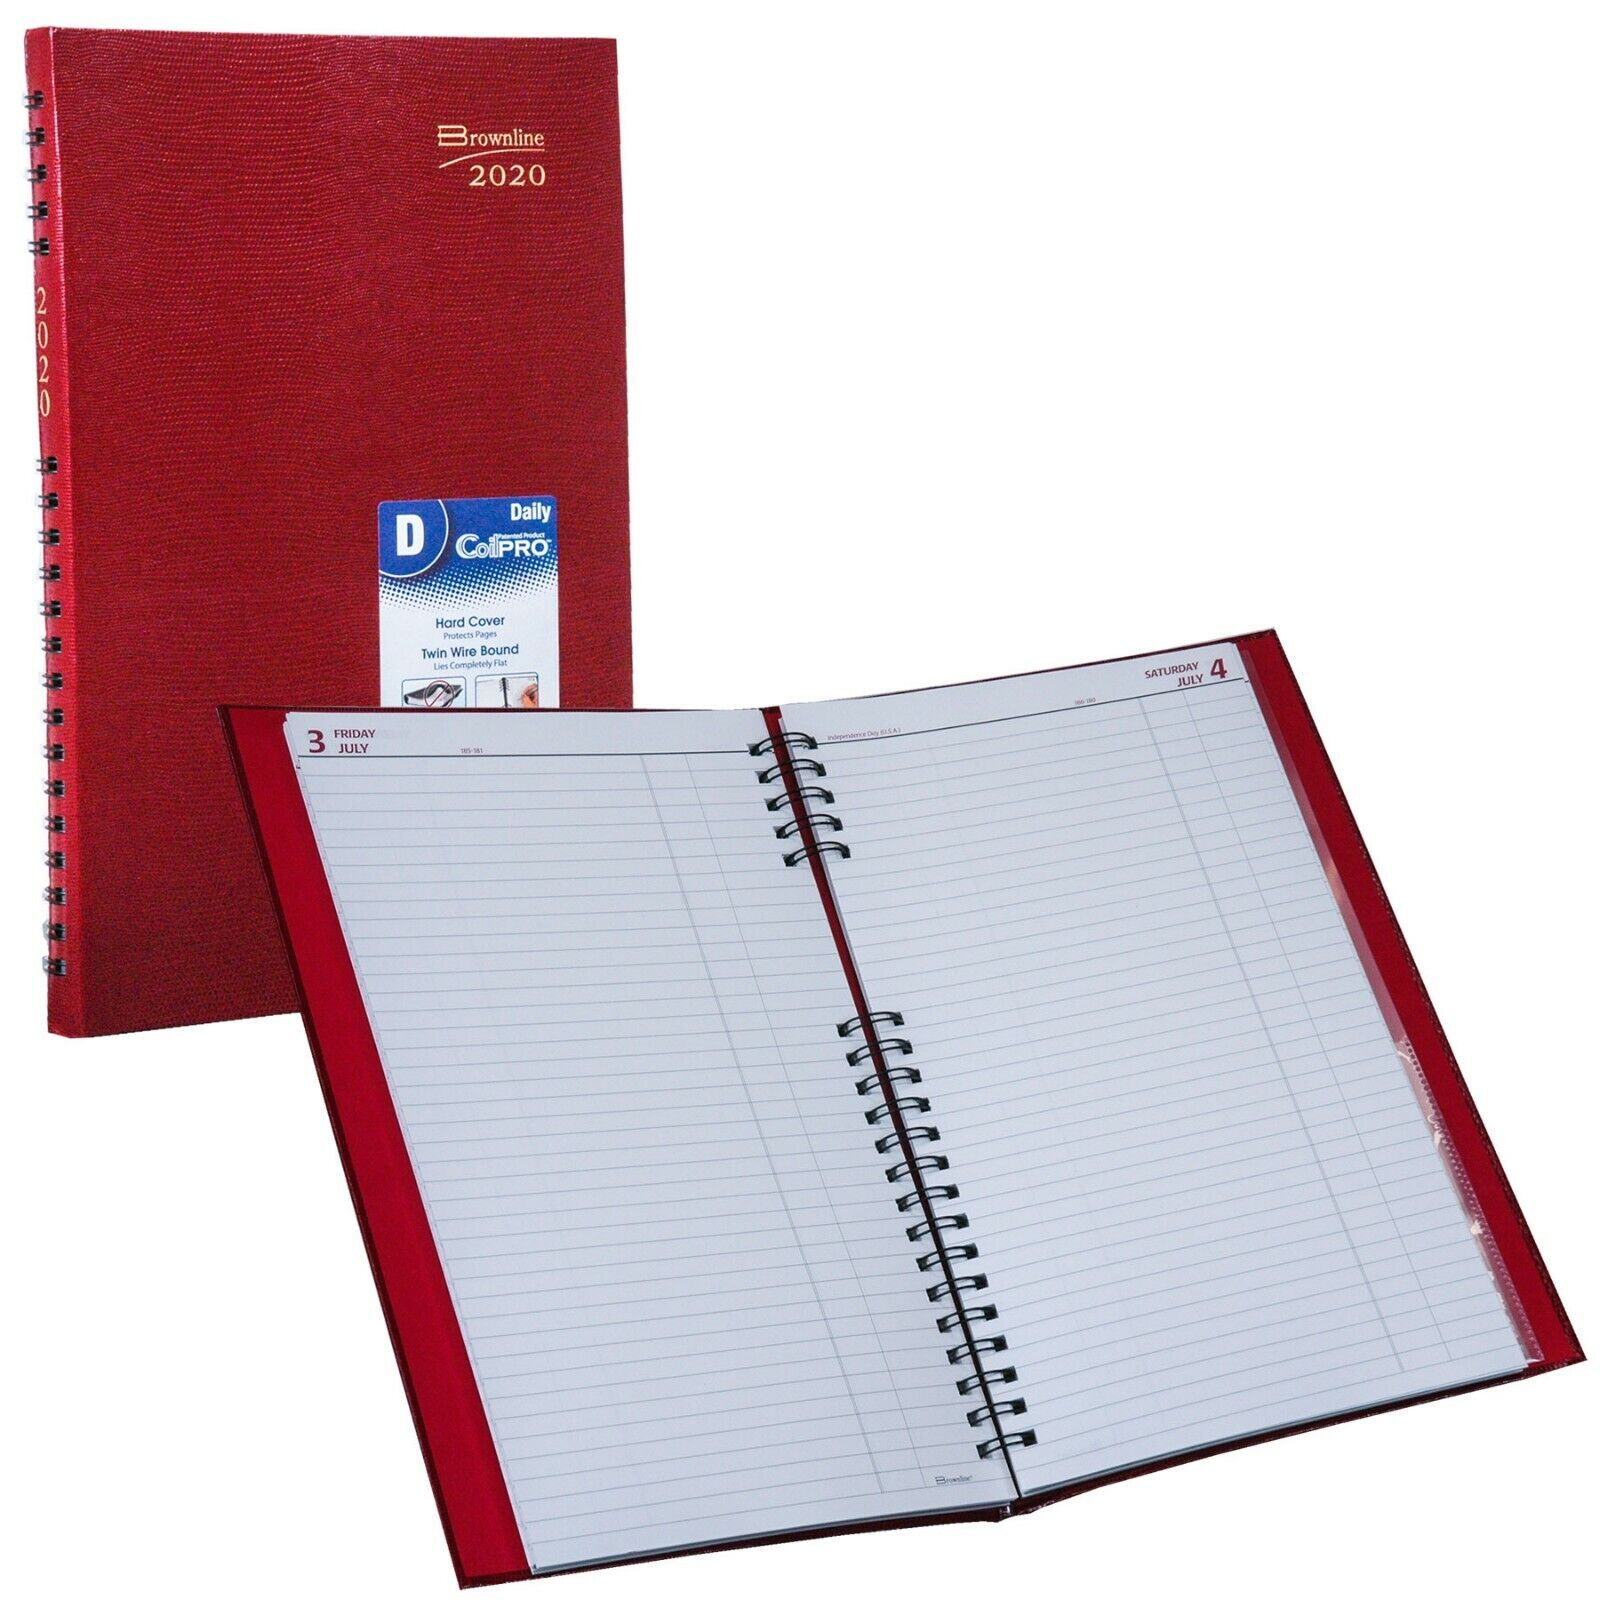 2020 Brownline C551C.RED CoilPRO Daily Planner, Hard Cover,